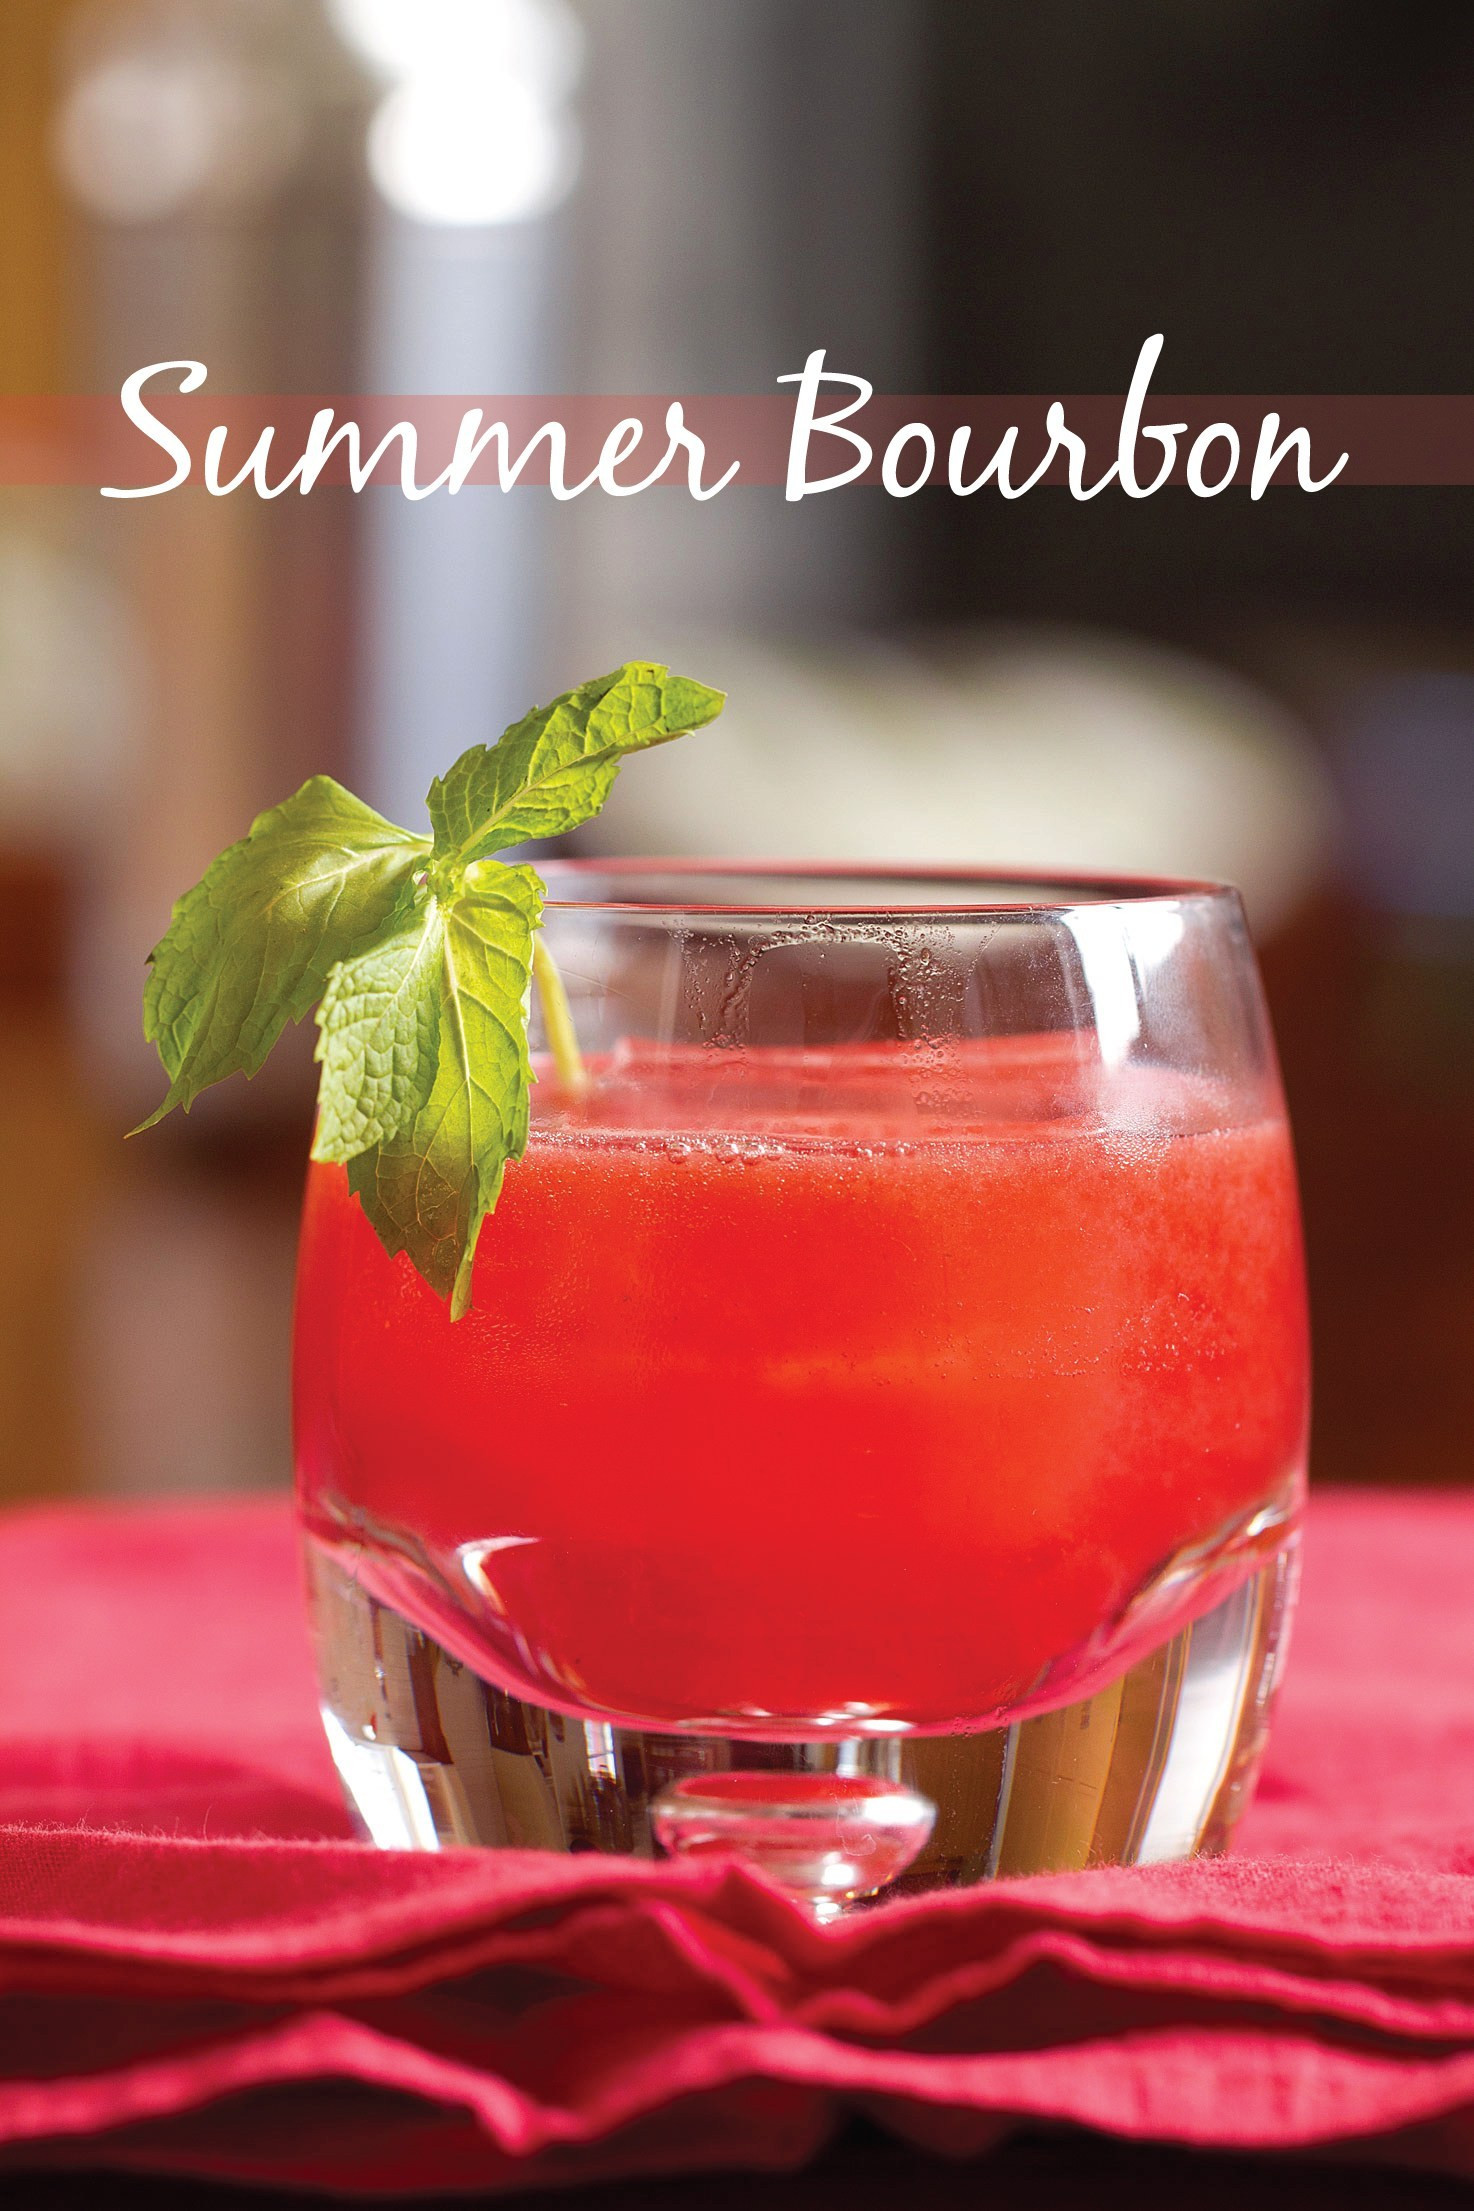 Summer Whiskey Drinks  Summer Bourbon is that an Oxymoron SippitySup